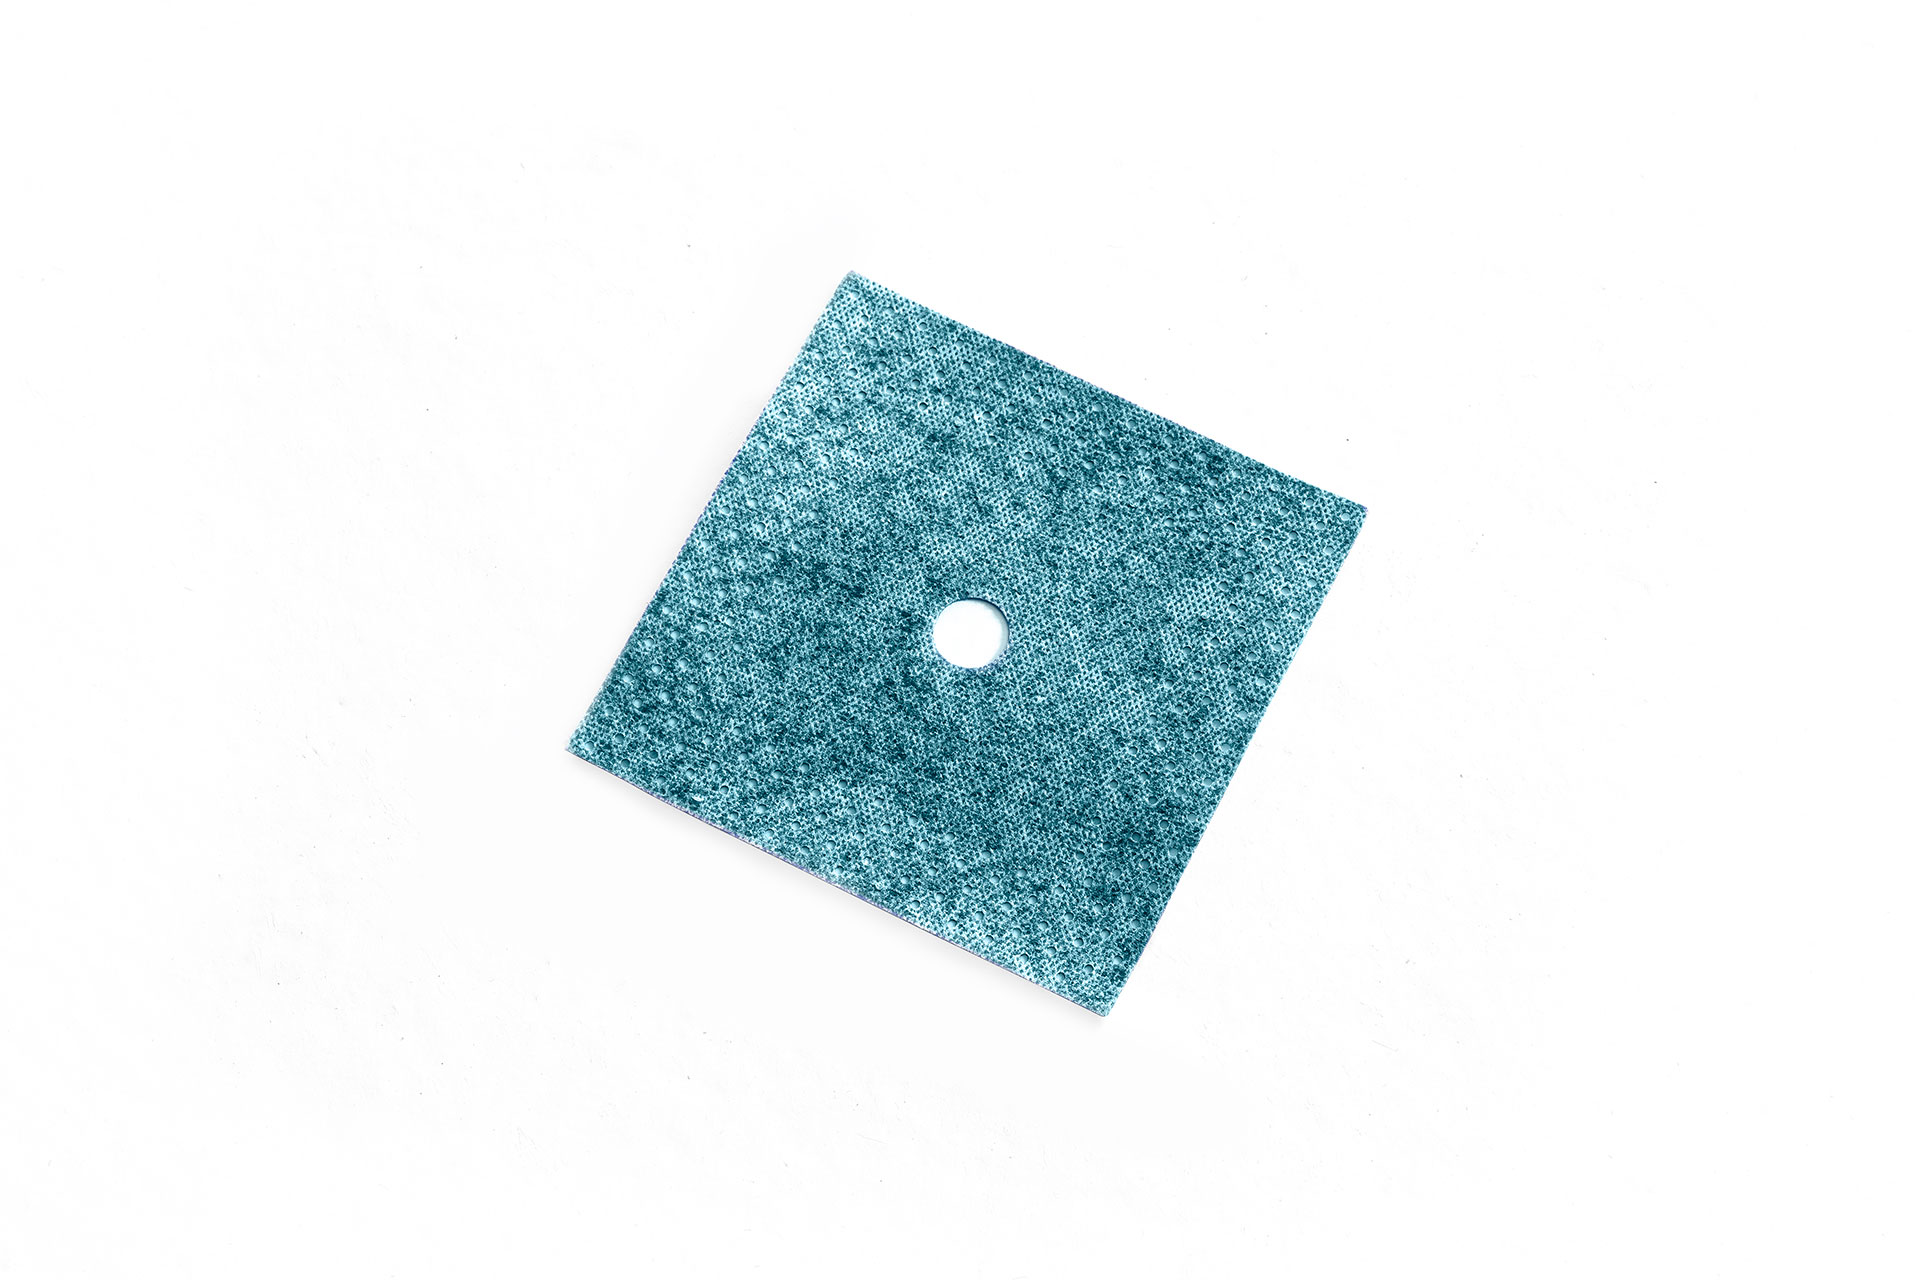 Waterproofing element for pipes